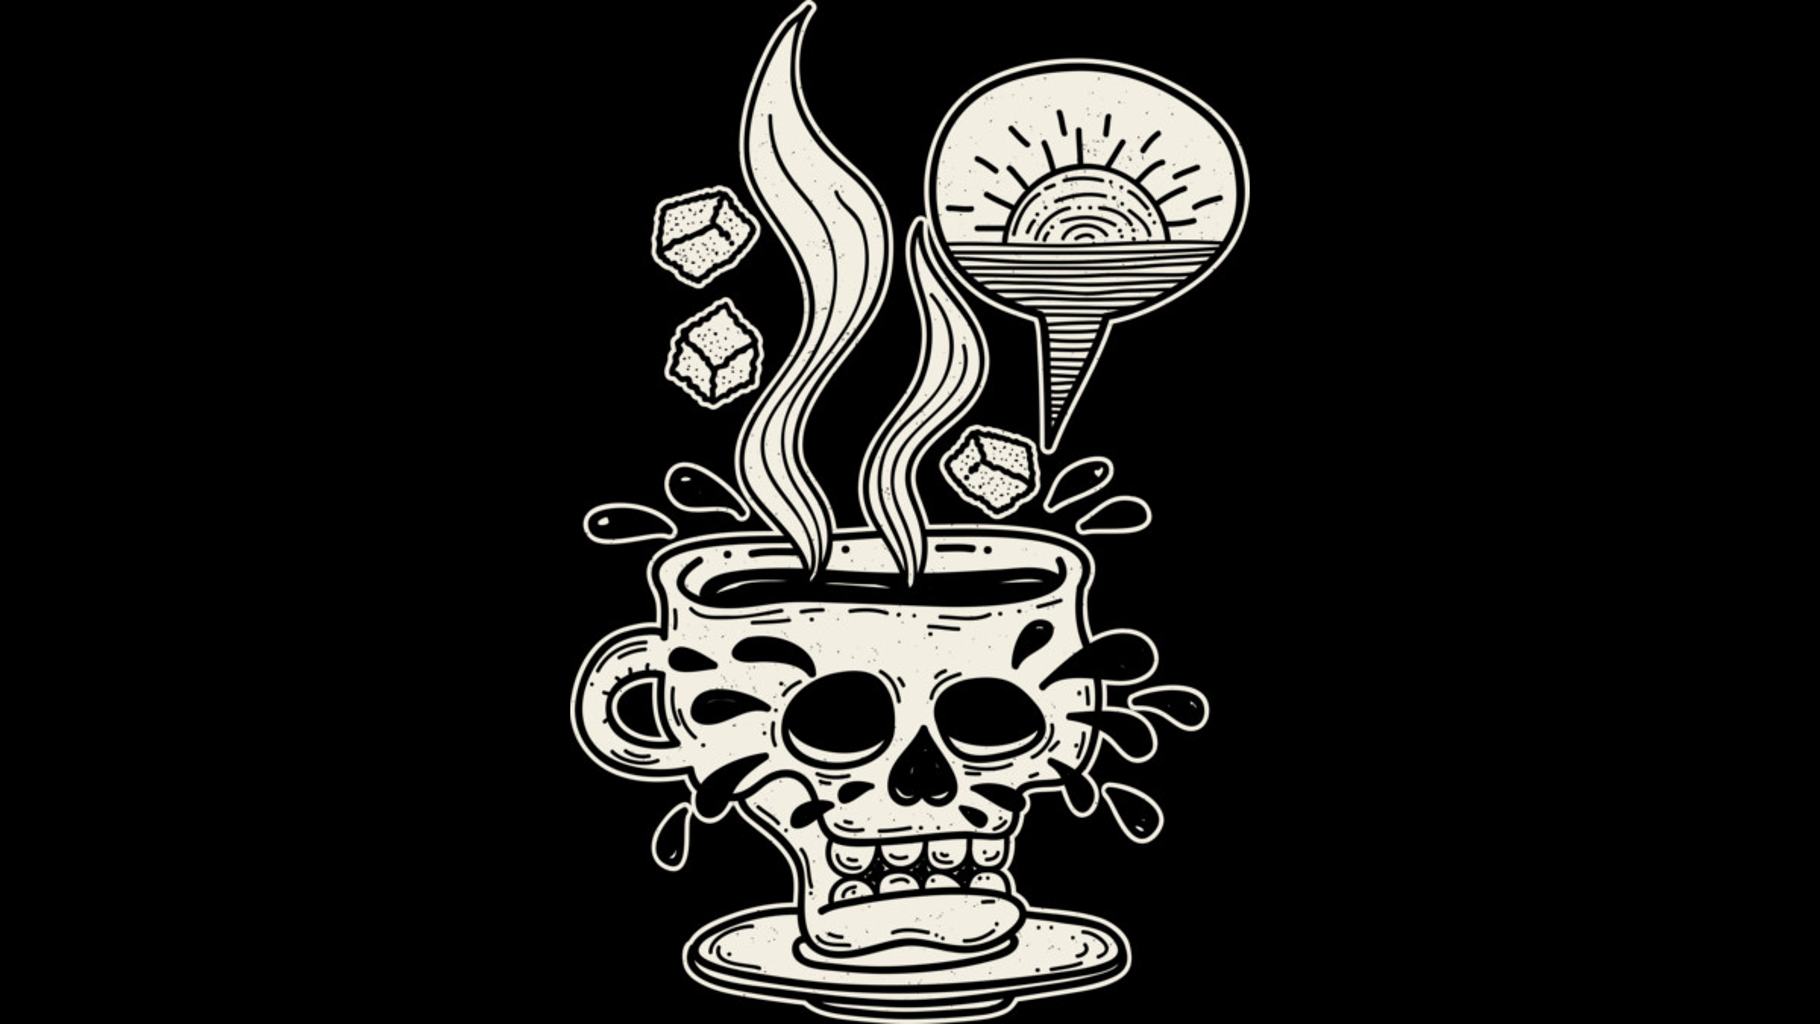 Design by Humans: Pour Me Some Coffee As Black As My Soul In The Early Morning